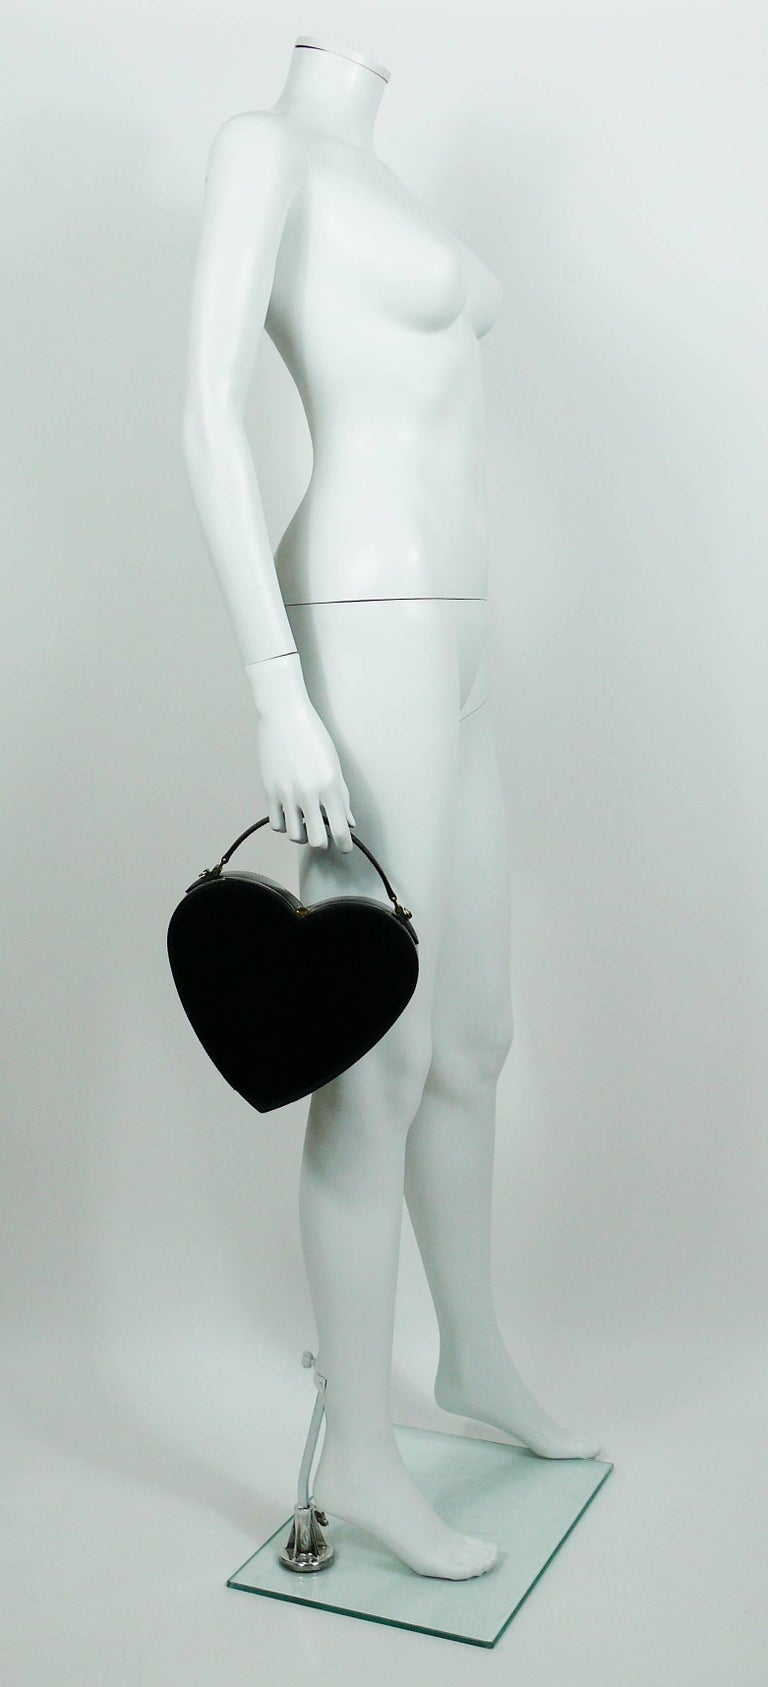 MOSCHINO vintage rare iconic black patent leather heart bag.  This bag features : - Heart shaped rigid body in black patent leather. - Convertible : top handle and shoulder bag (matching strap). - Top push button closure. - Black signature canvas